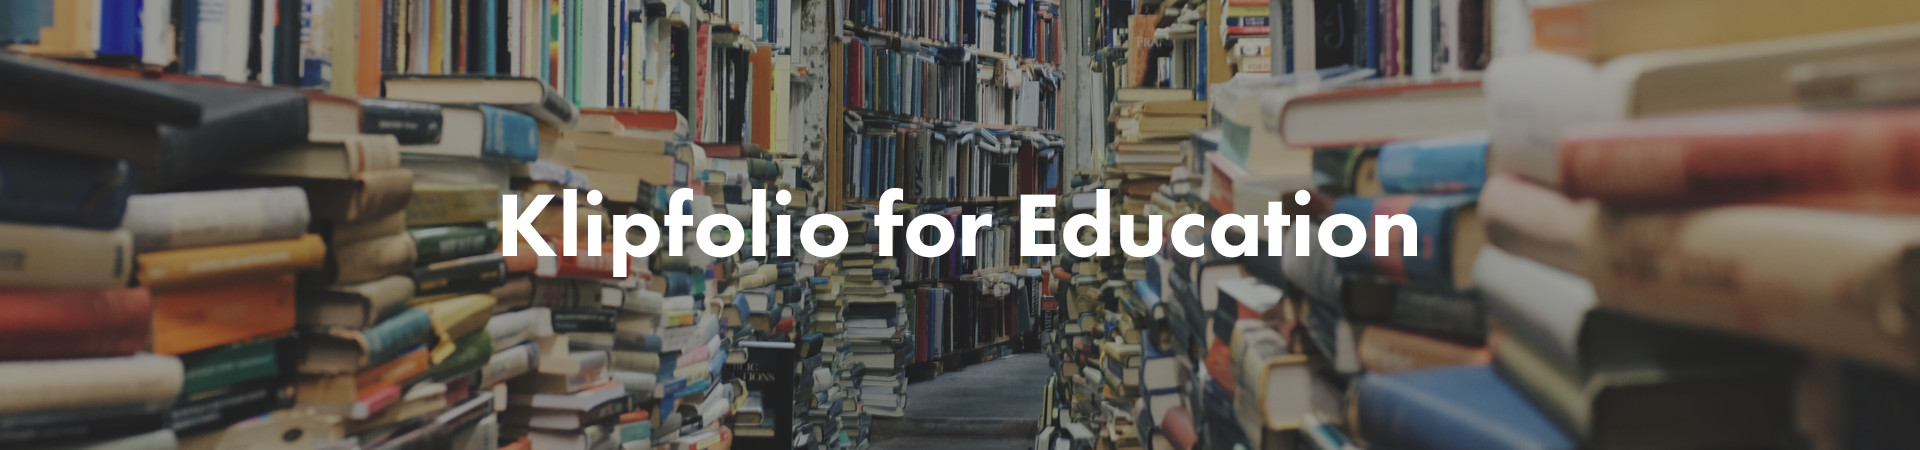 klipfolio - education program